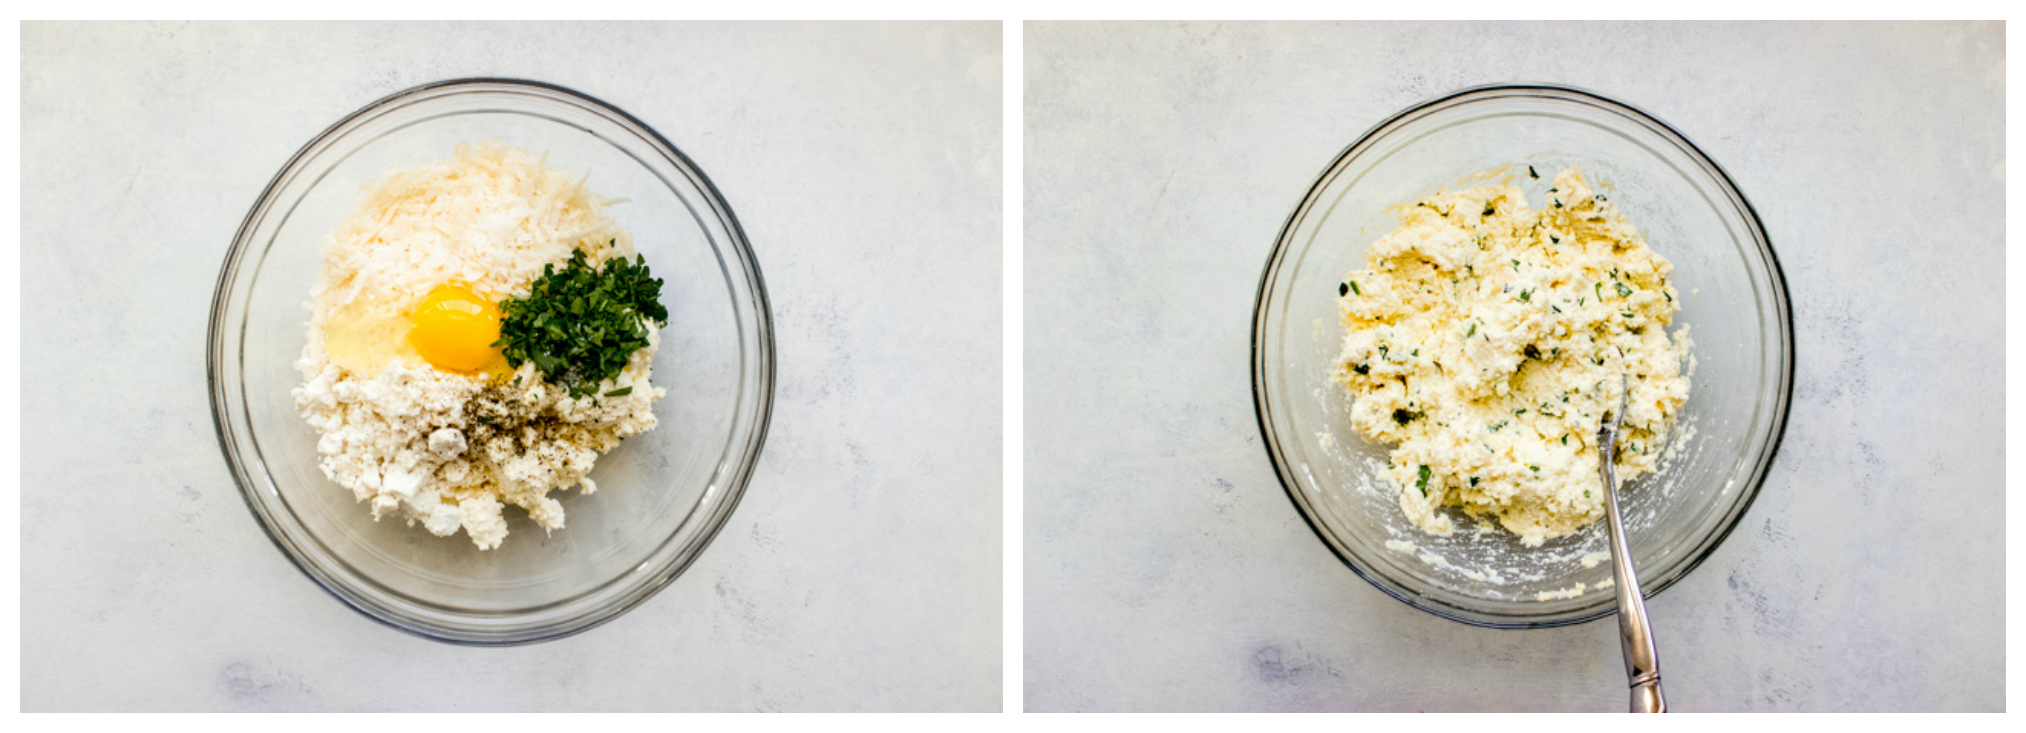 ricotta mixture in a glass bowl